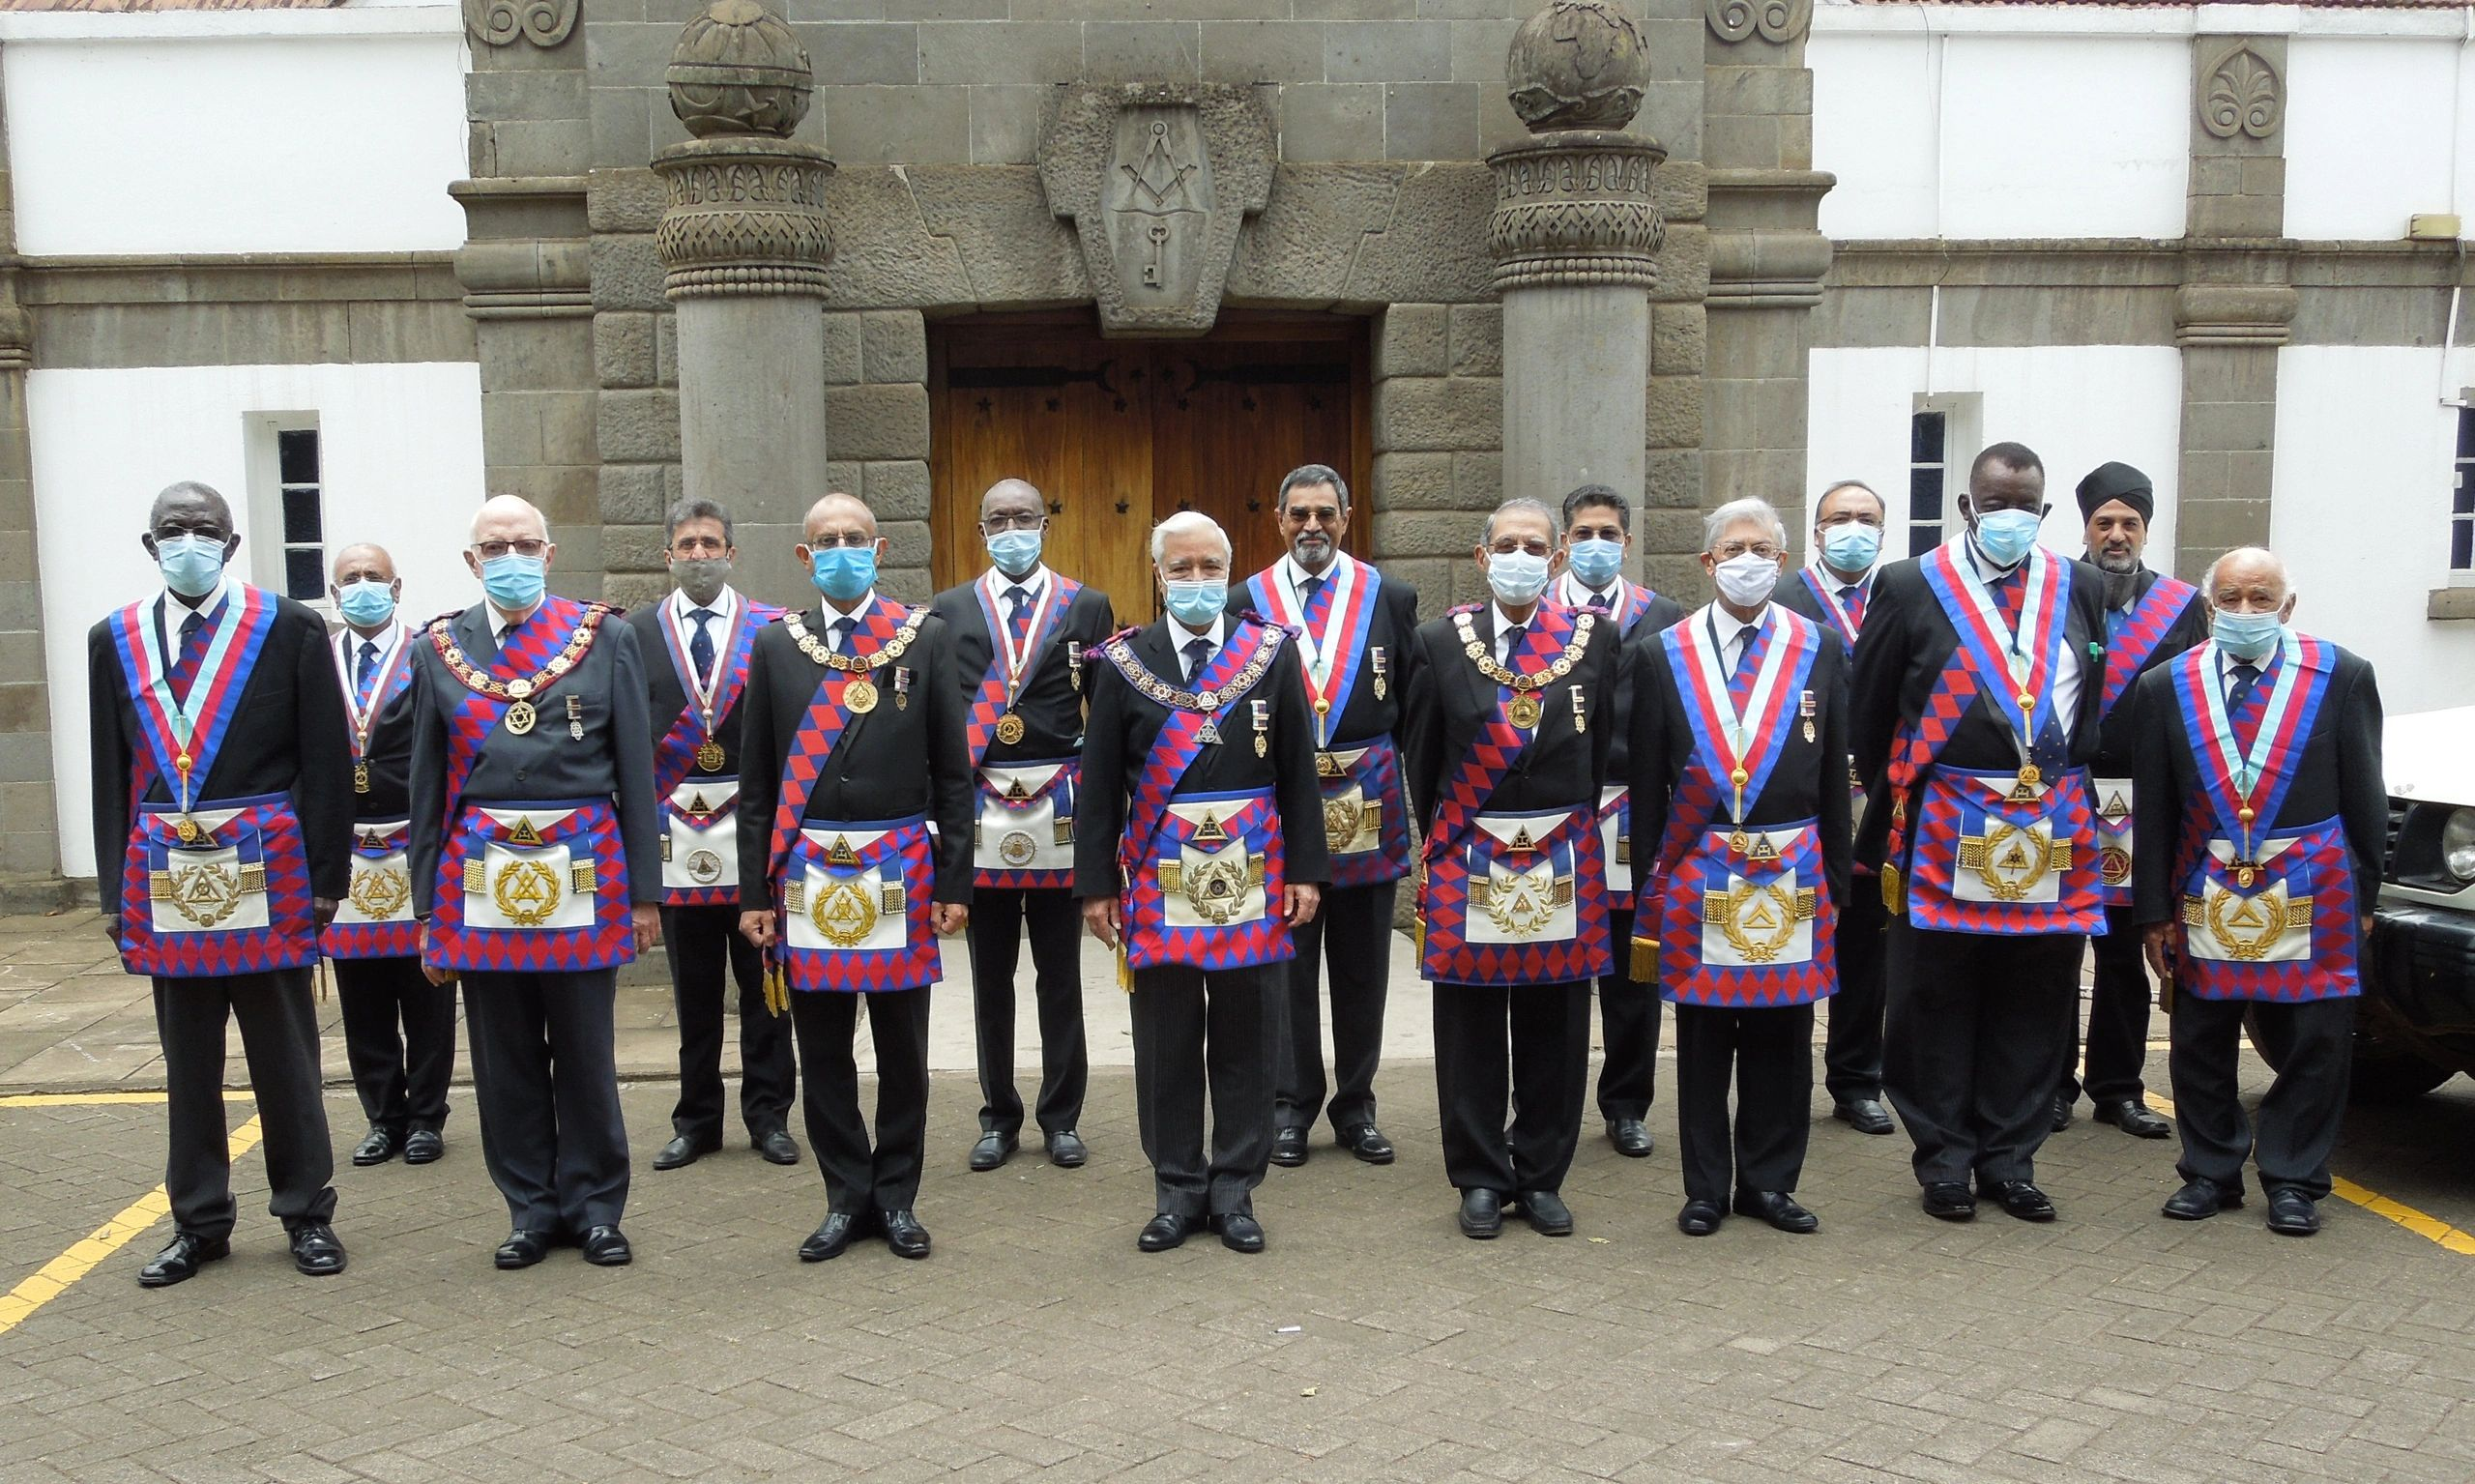 District Grand Chapter Annual Convocation, Saturday 17th October 2020